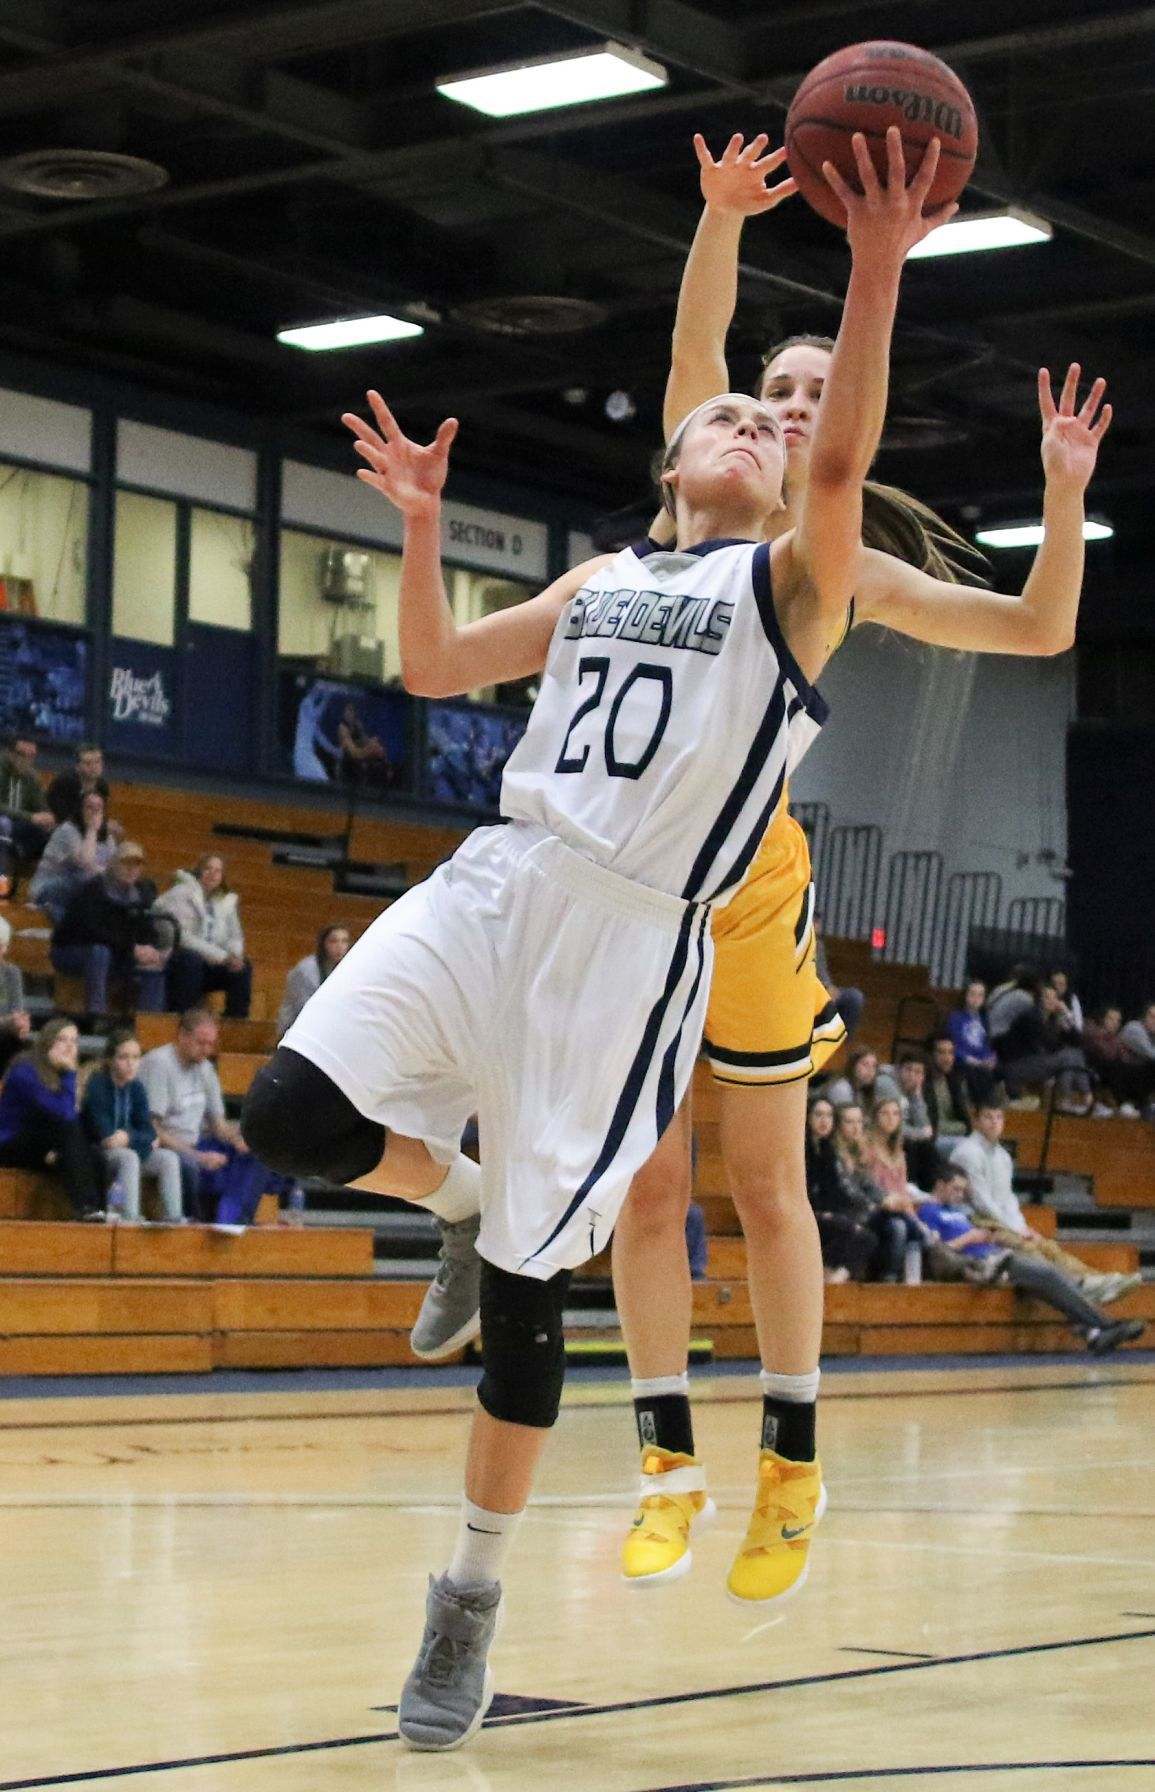 020219_CON_BRANAL_WBB_OSHKOSH_AT_STOUT-13